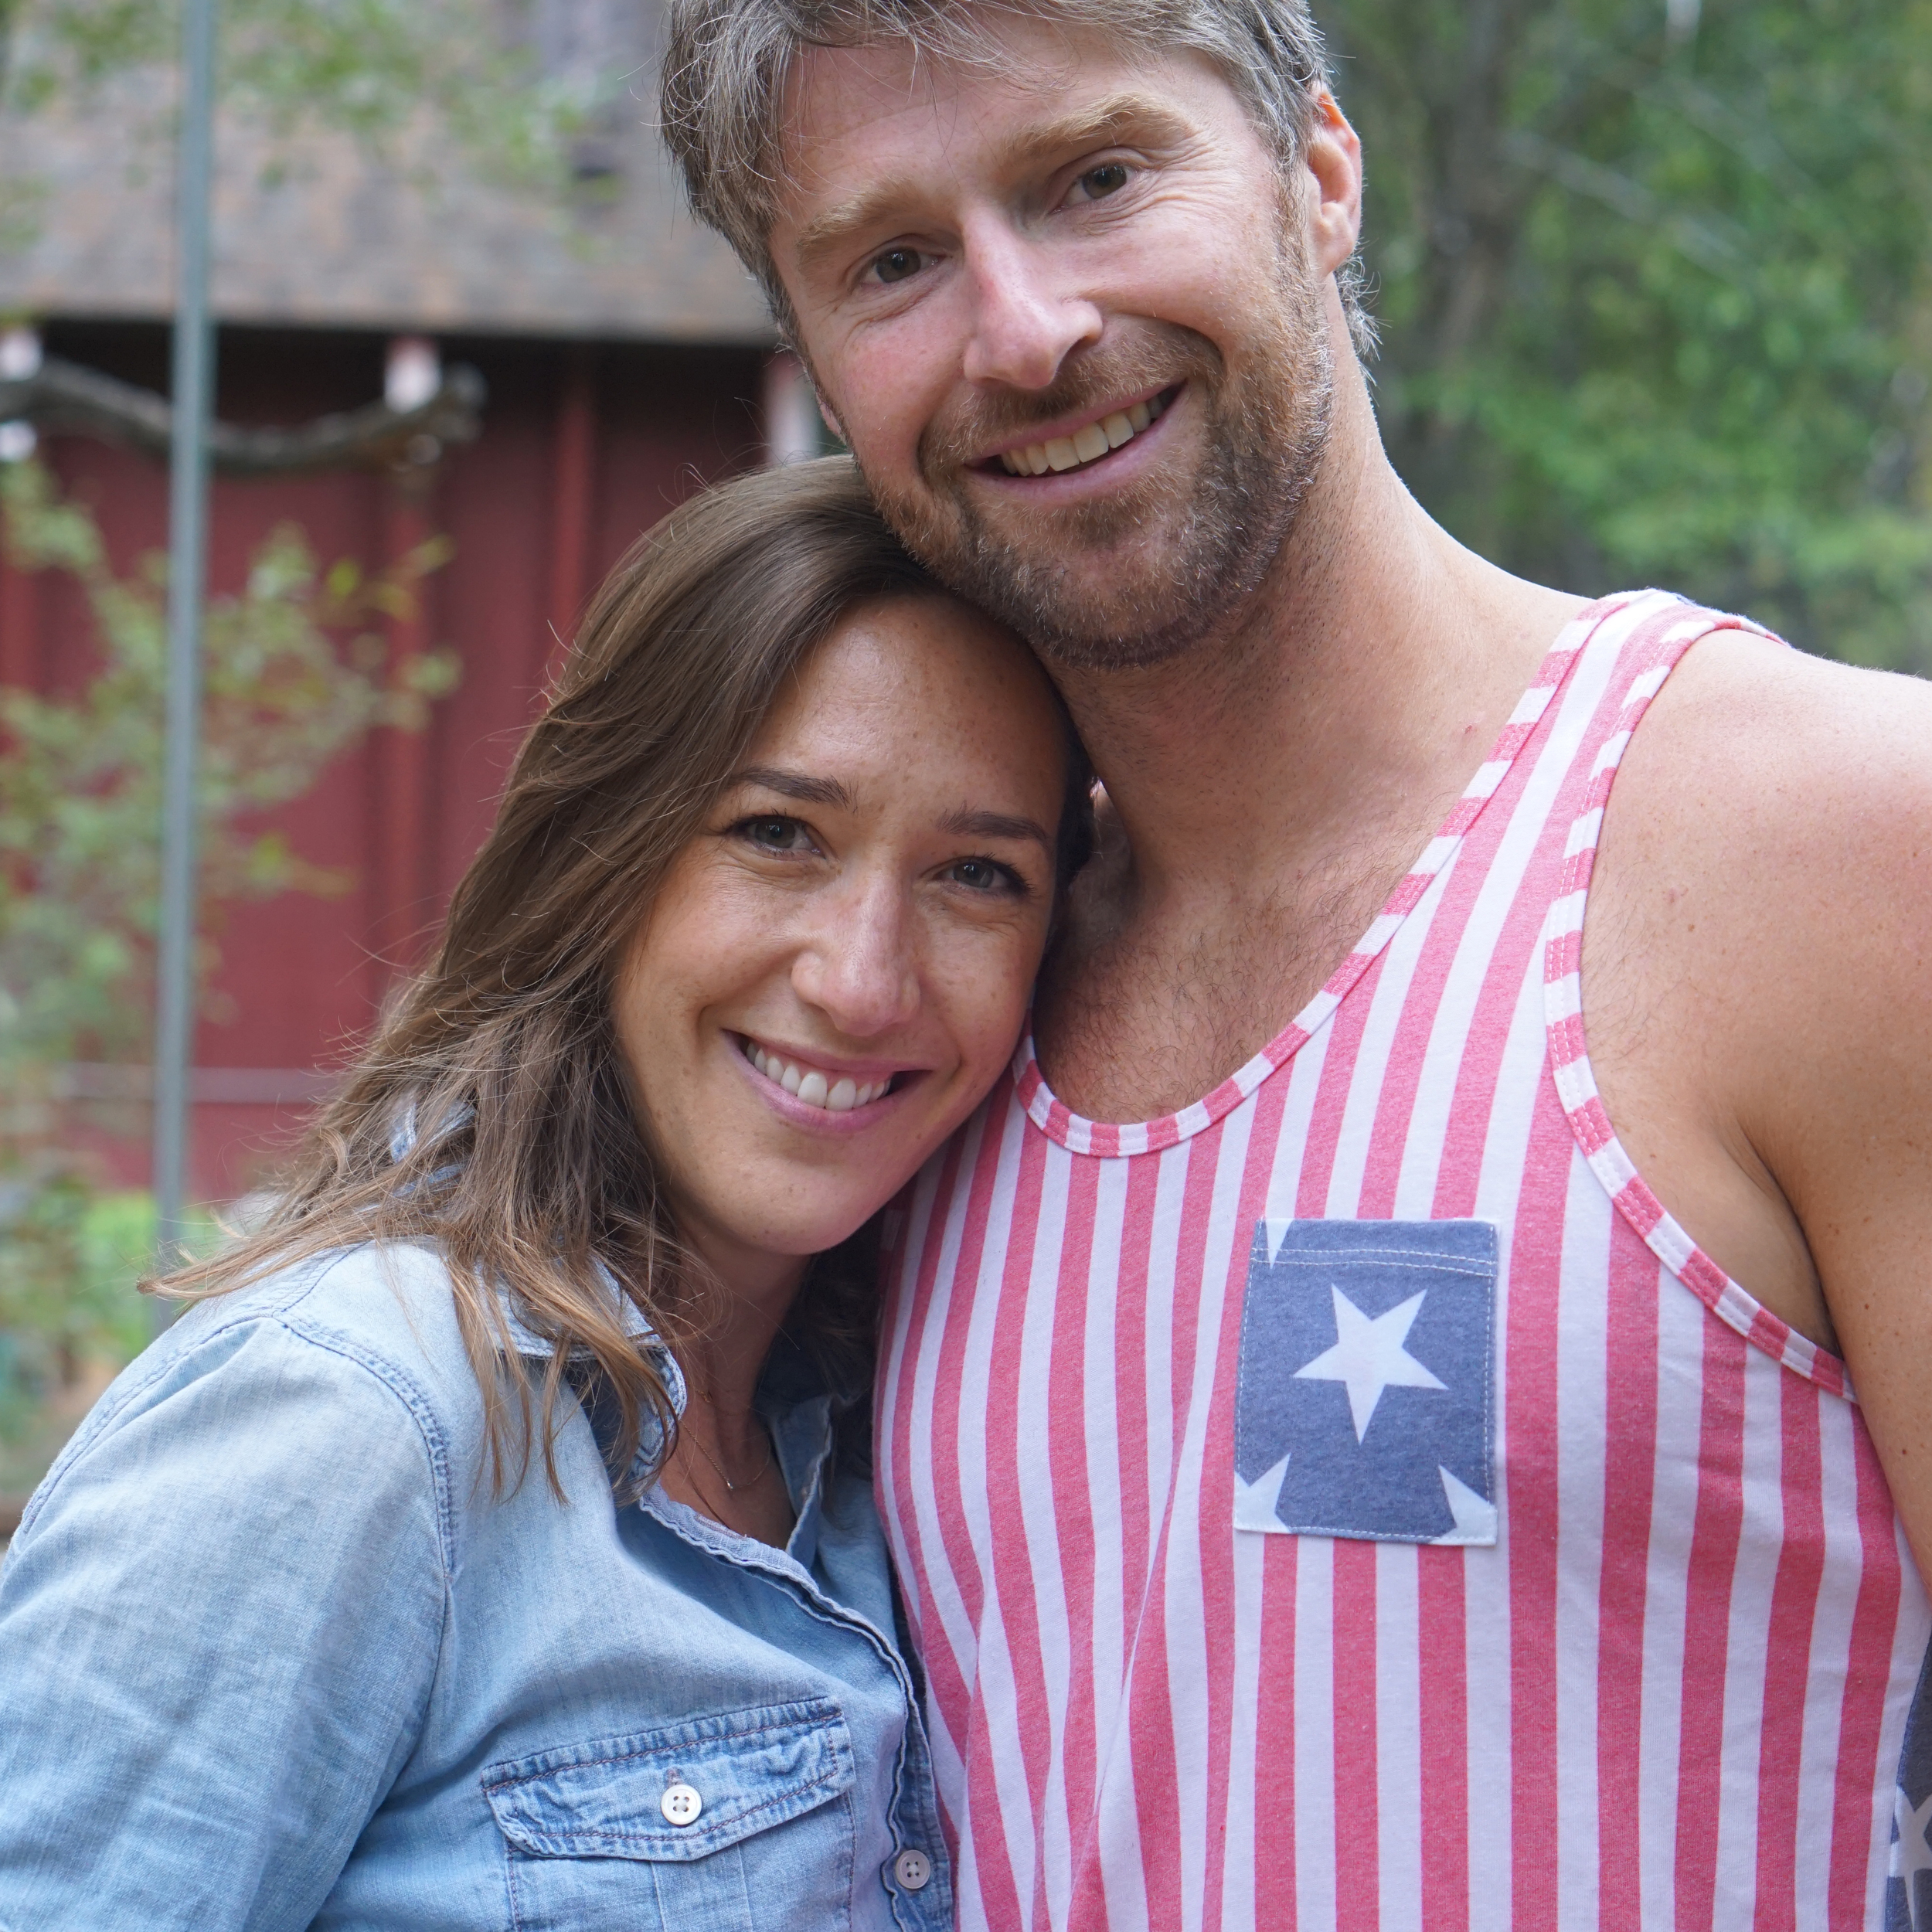 Festive attire for our Fourth of July celebration